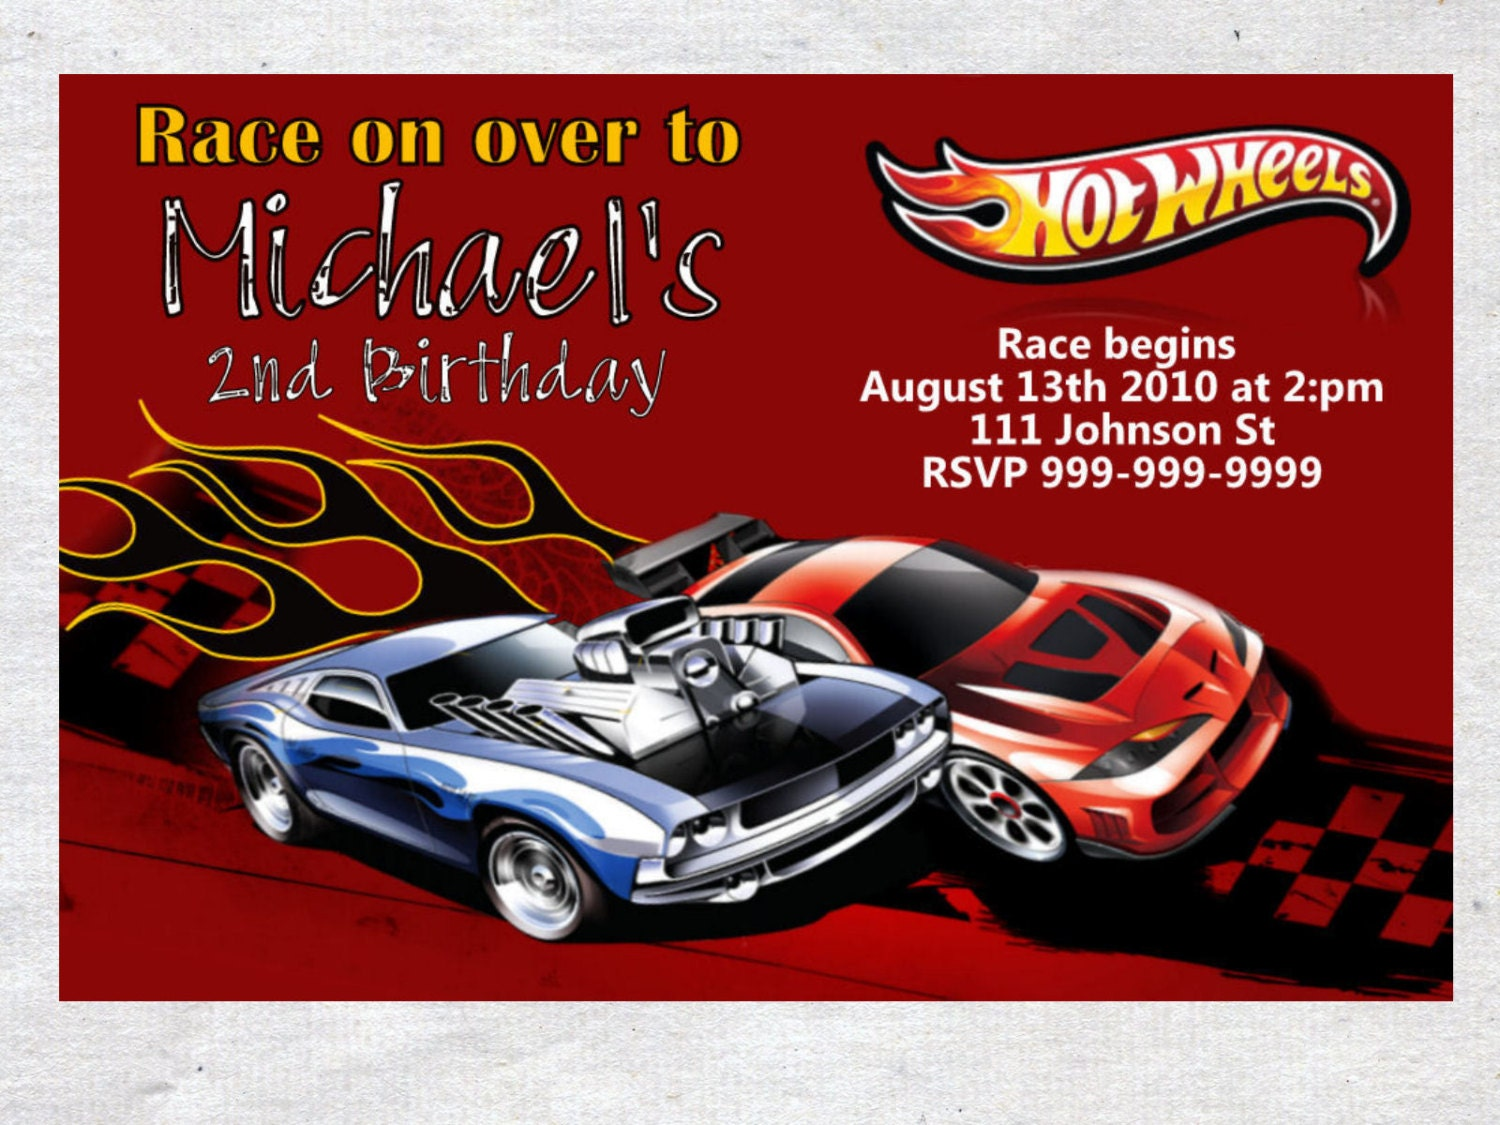 Hot Wheel Birthday Invitations is beautiful invitations template